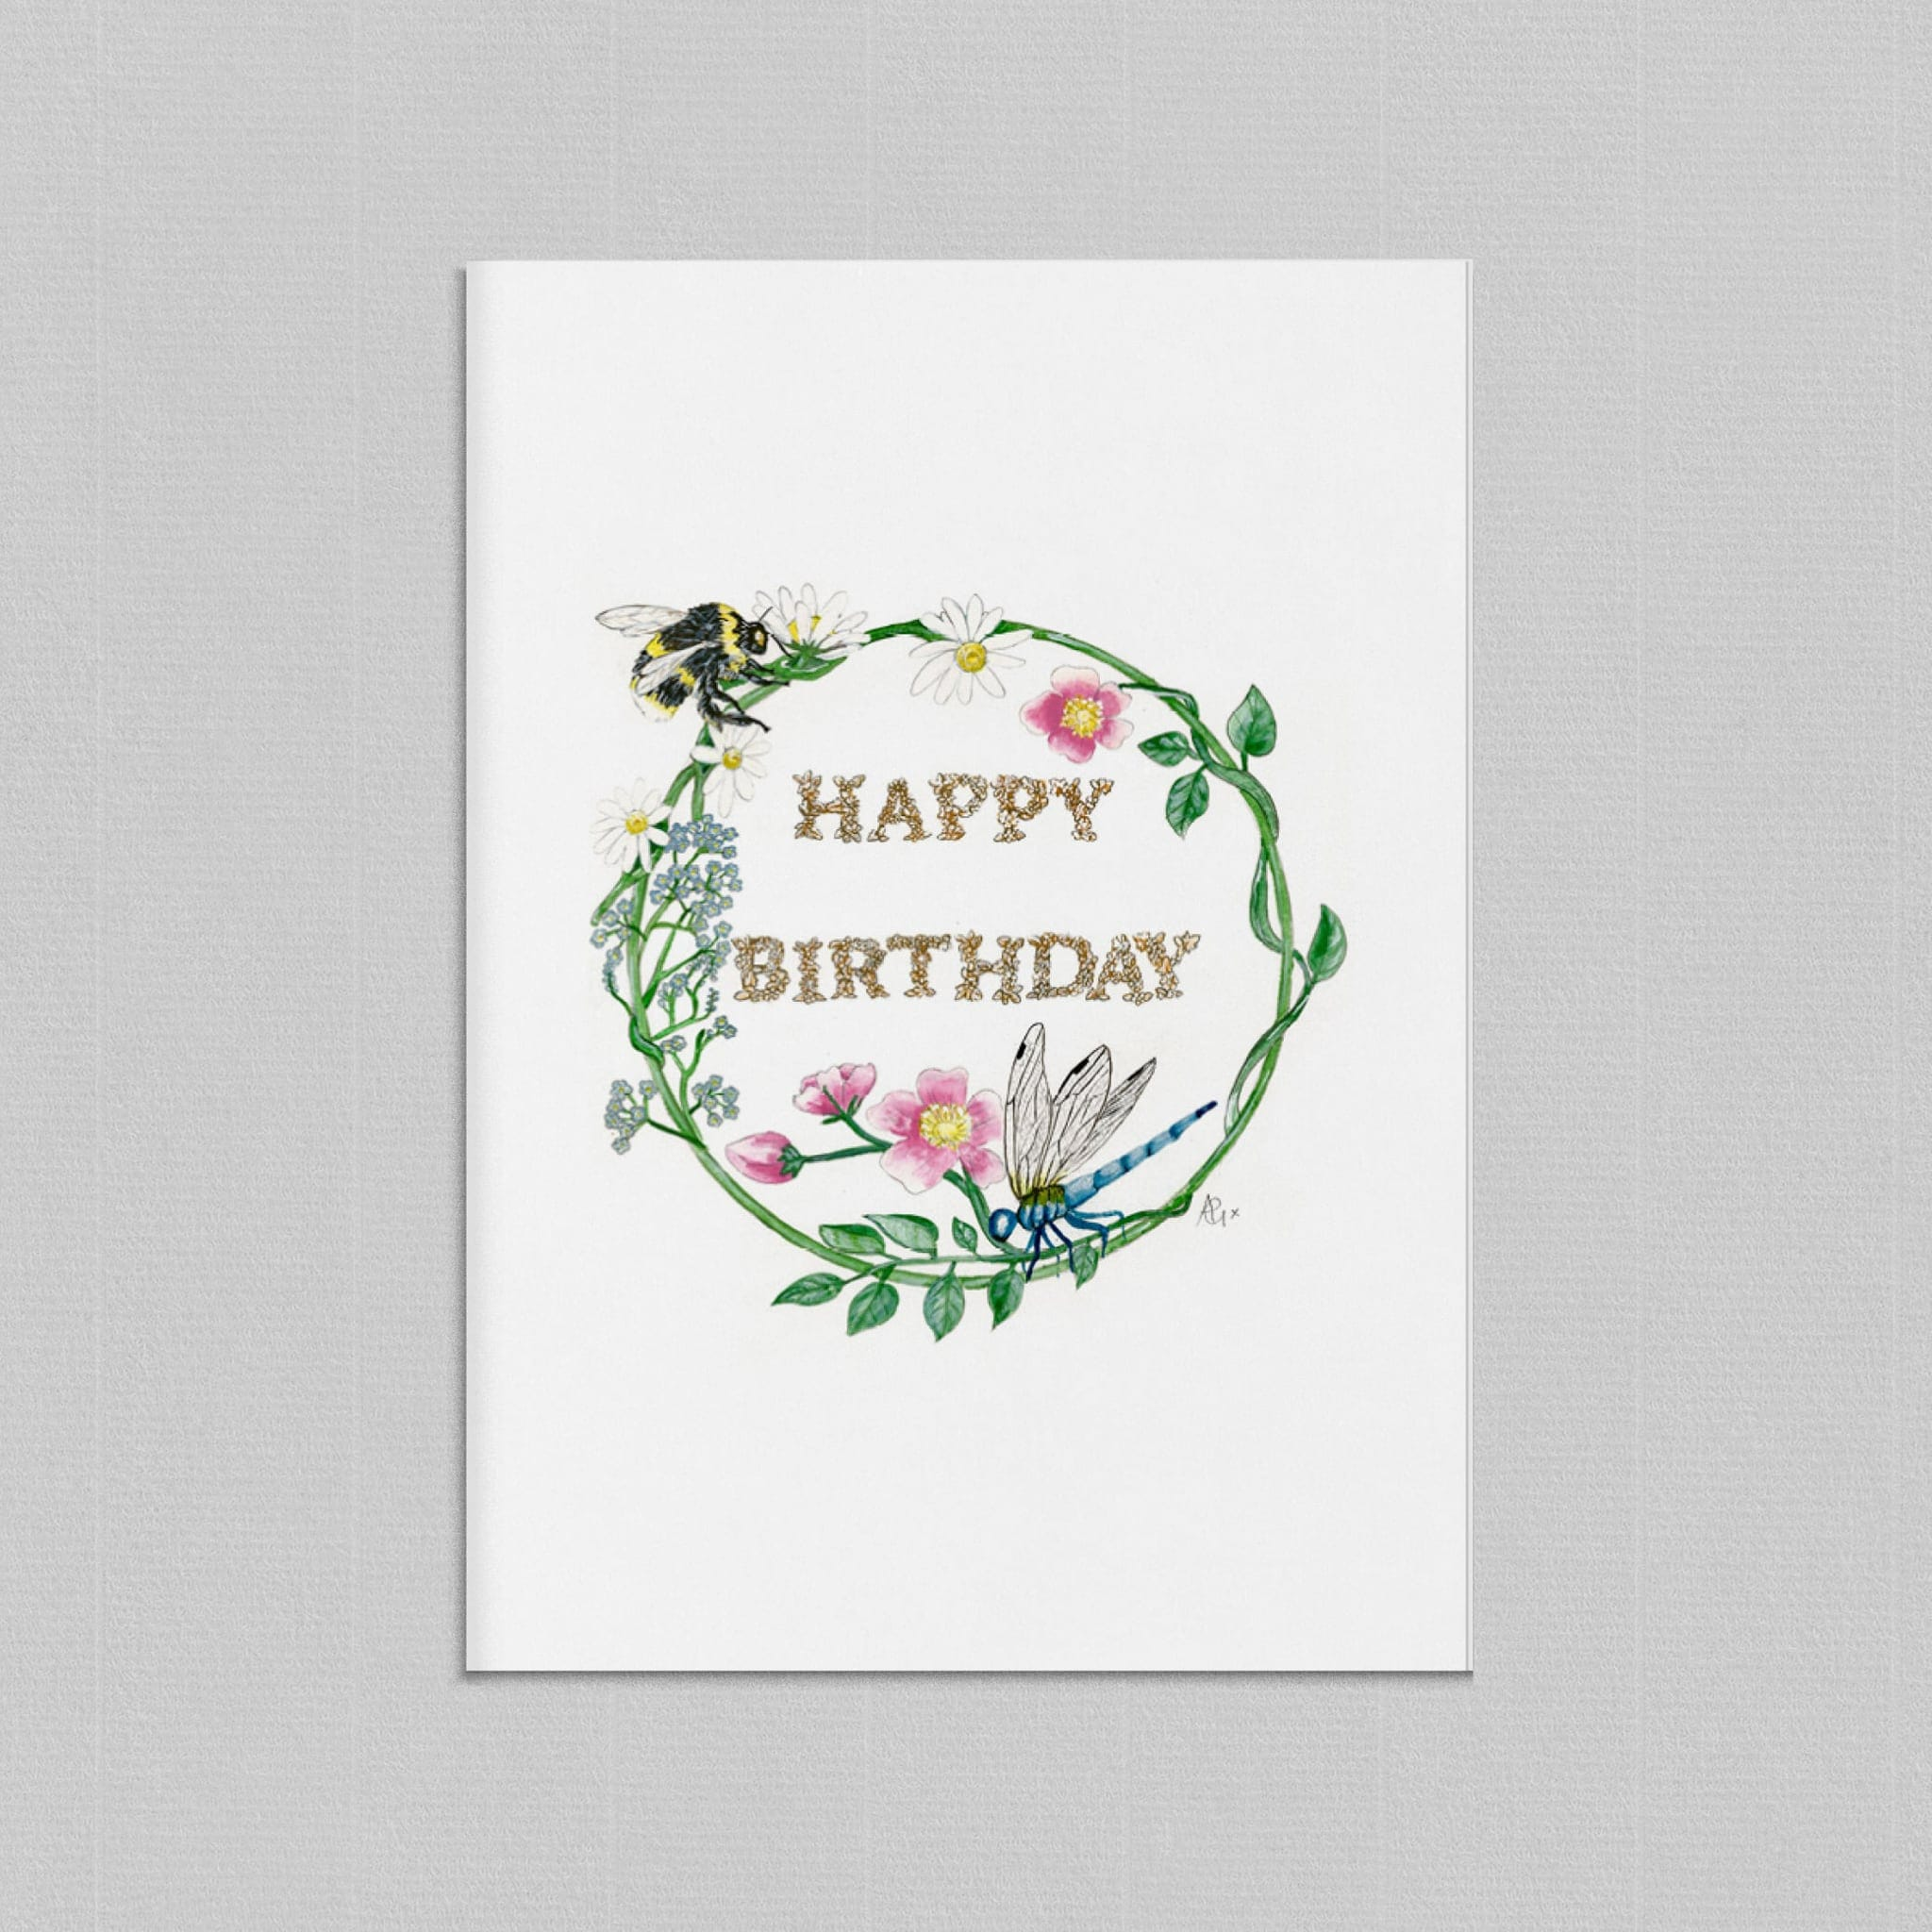 Happy Birthday Illustrated Greetings Card